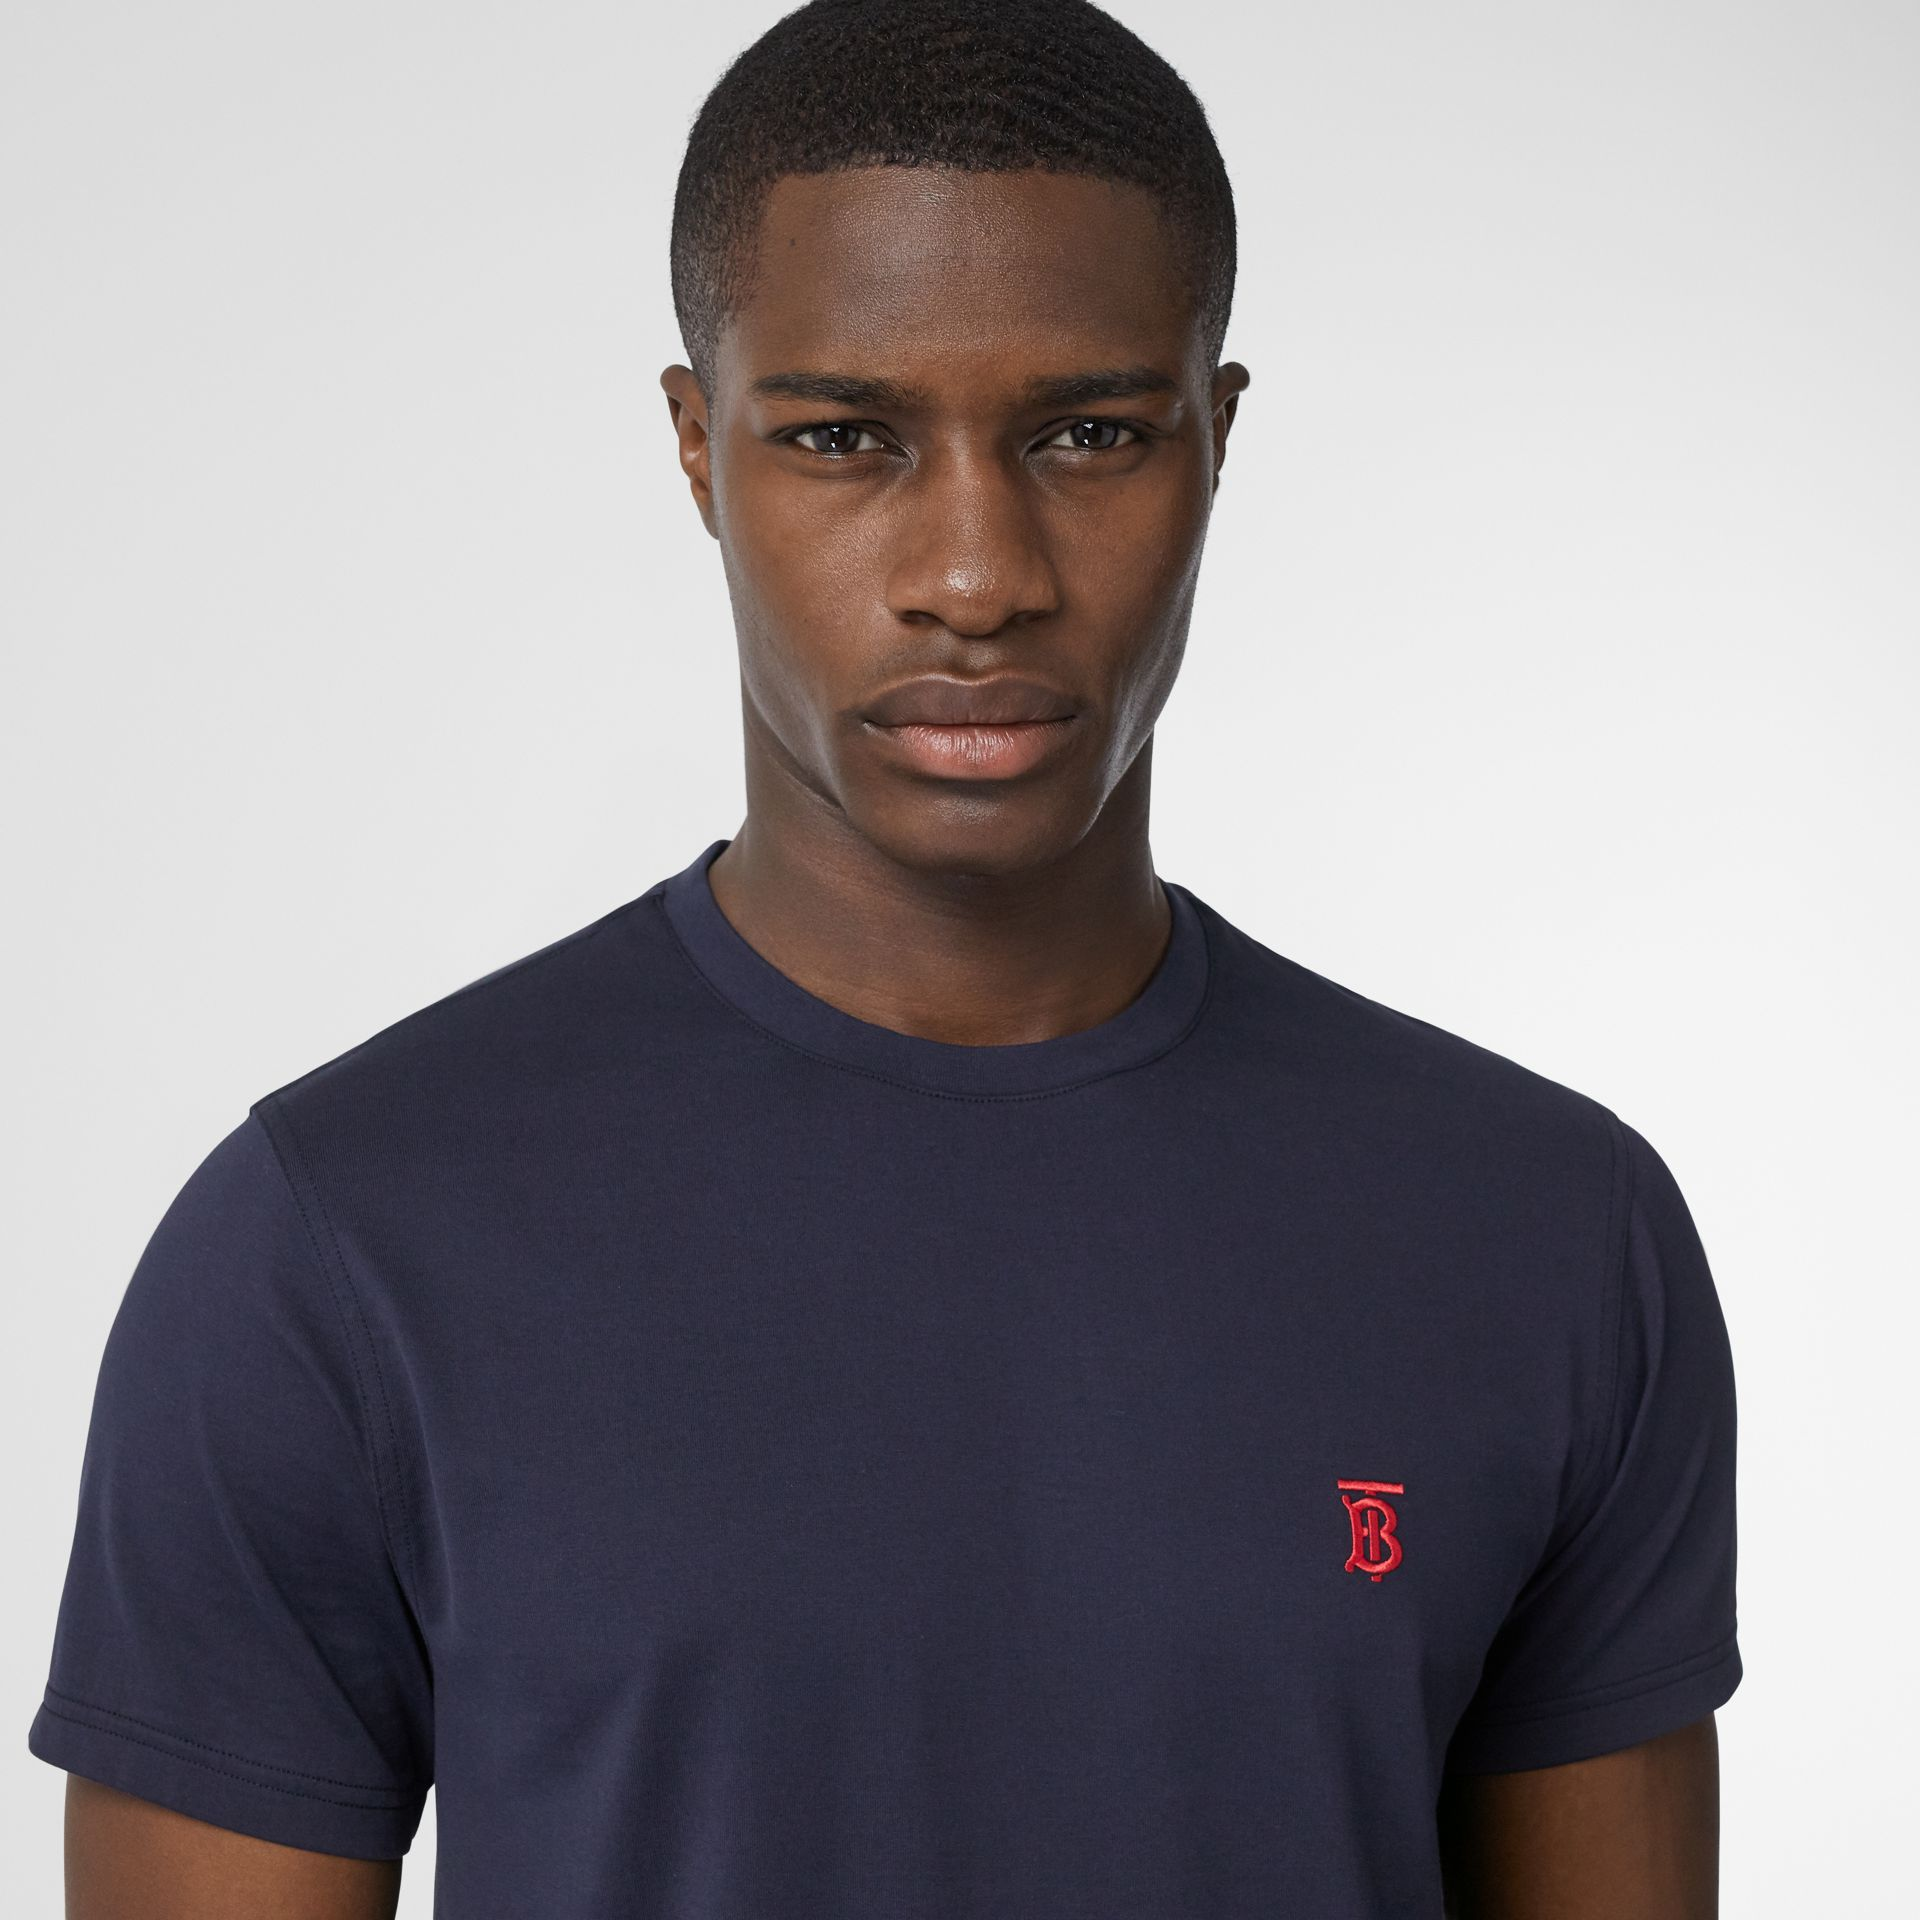 Monogram Motif Cotton T-shirt in Navy - Men | Burberry - gallery image 1